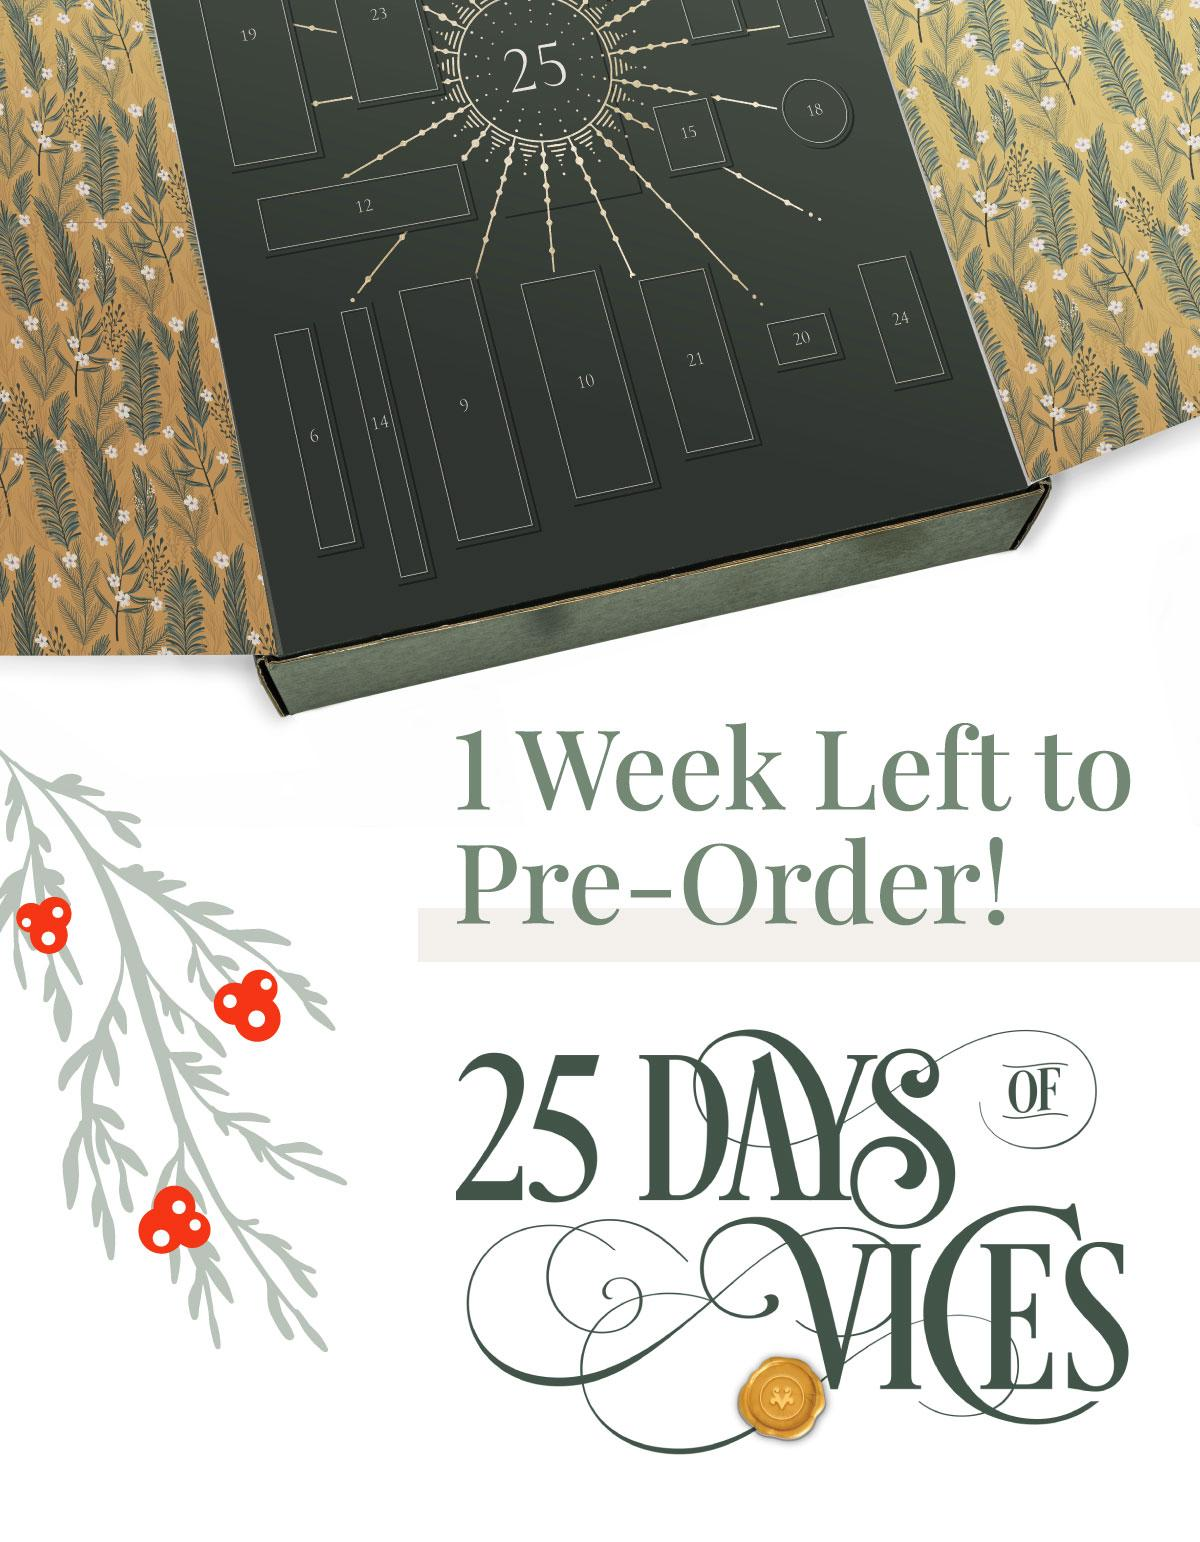 25 Days of Vices Advent Calendar – Now Available